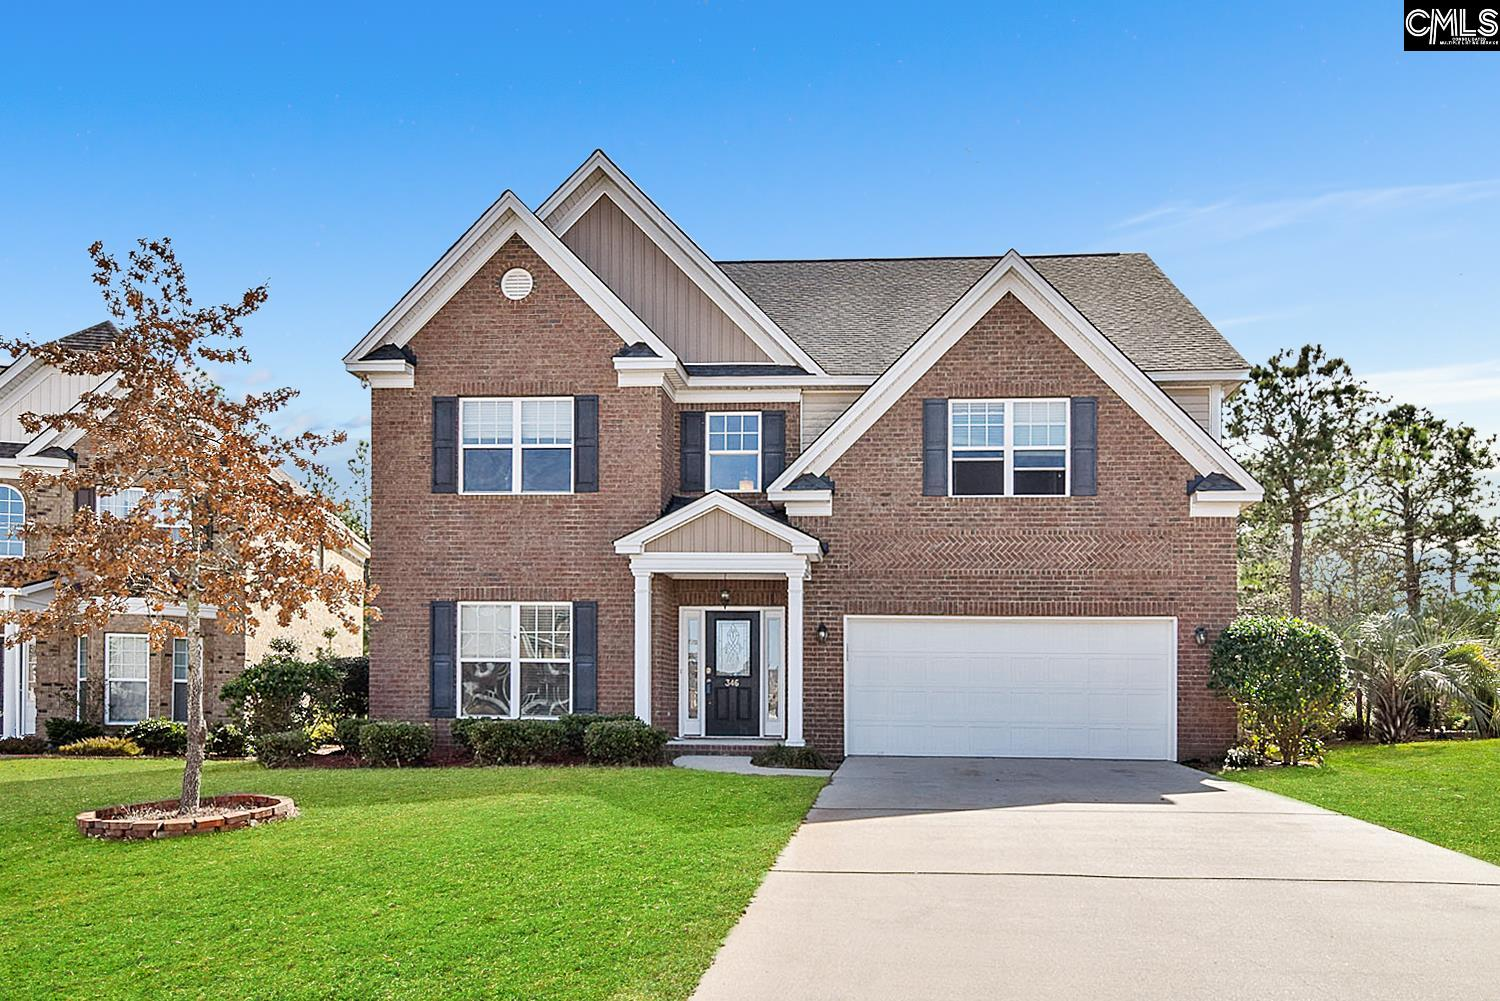 346 Pisgah Flats Lexington, SC 29072